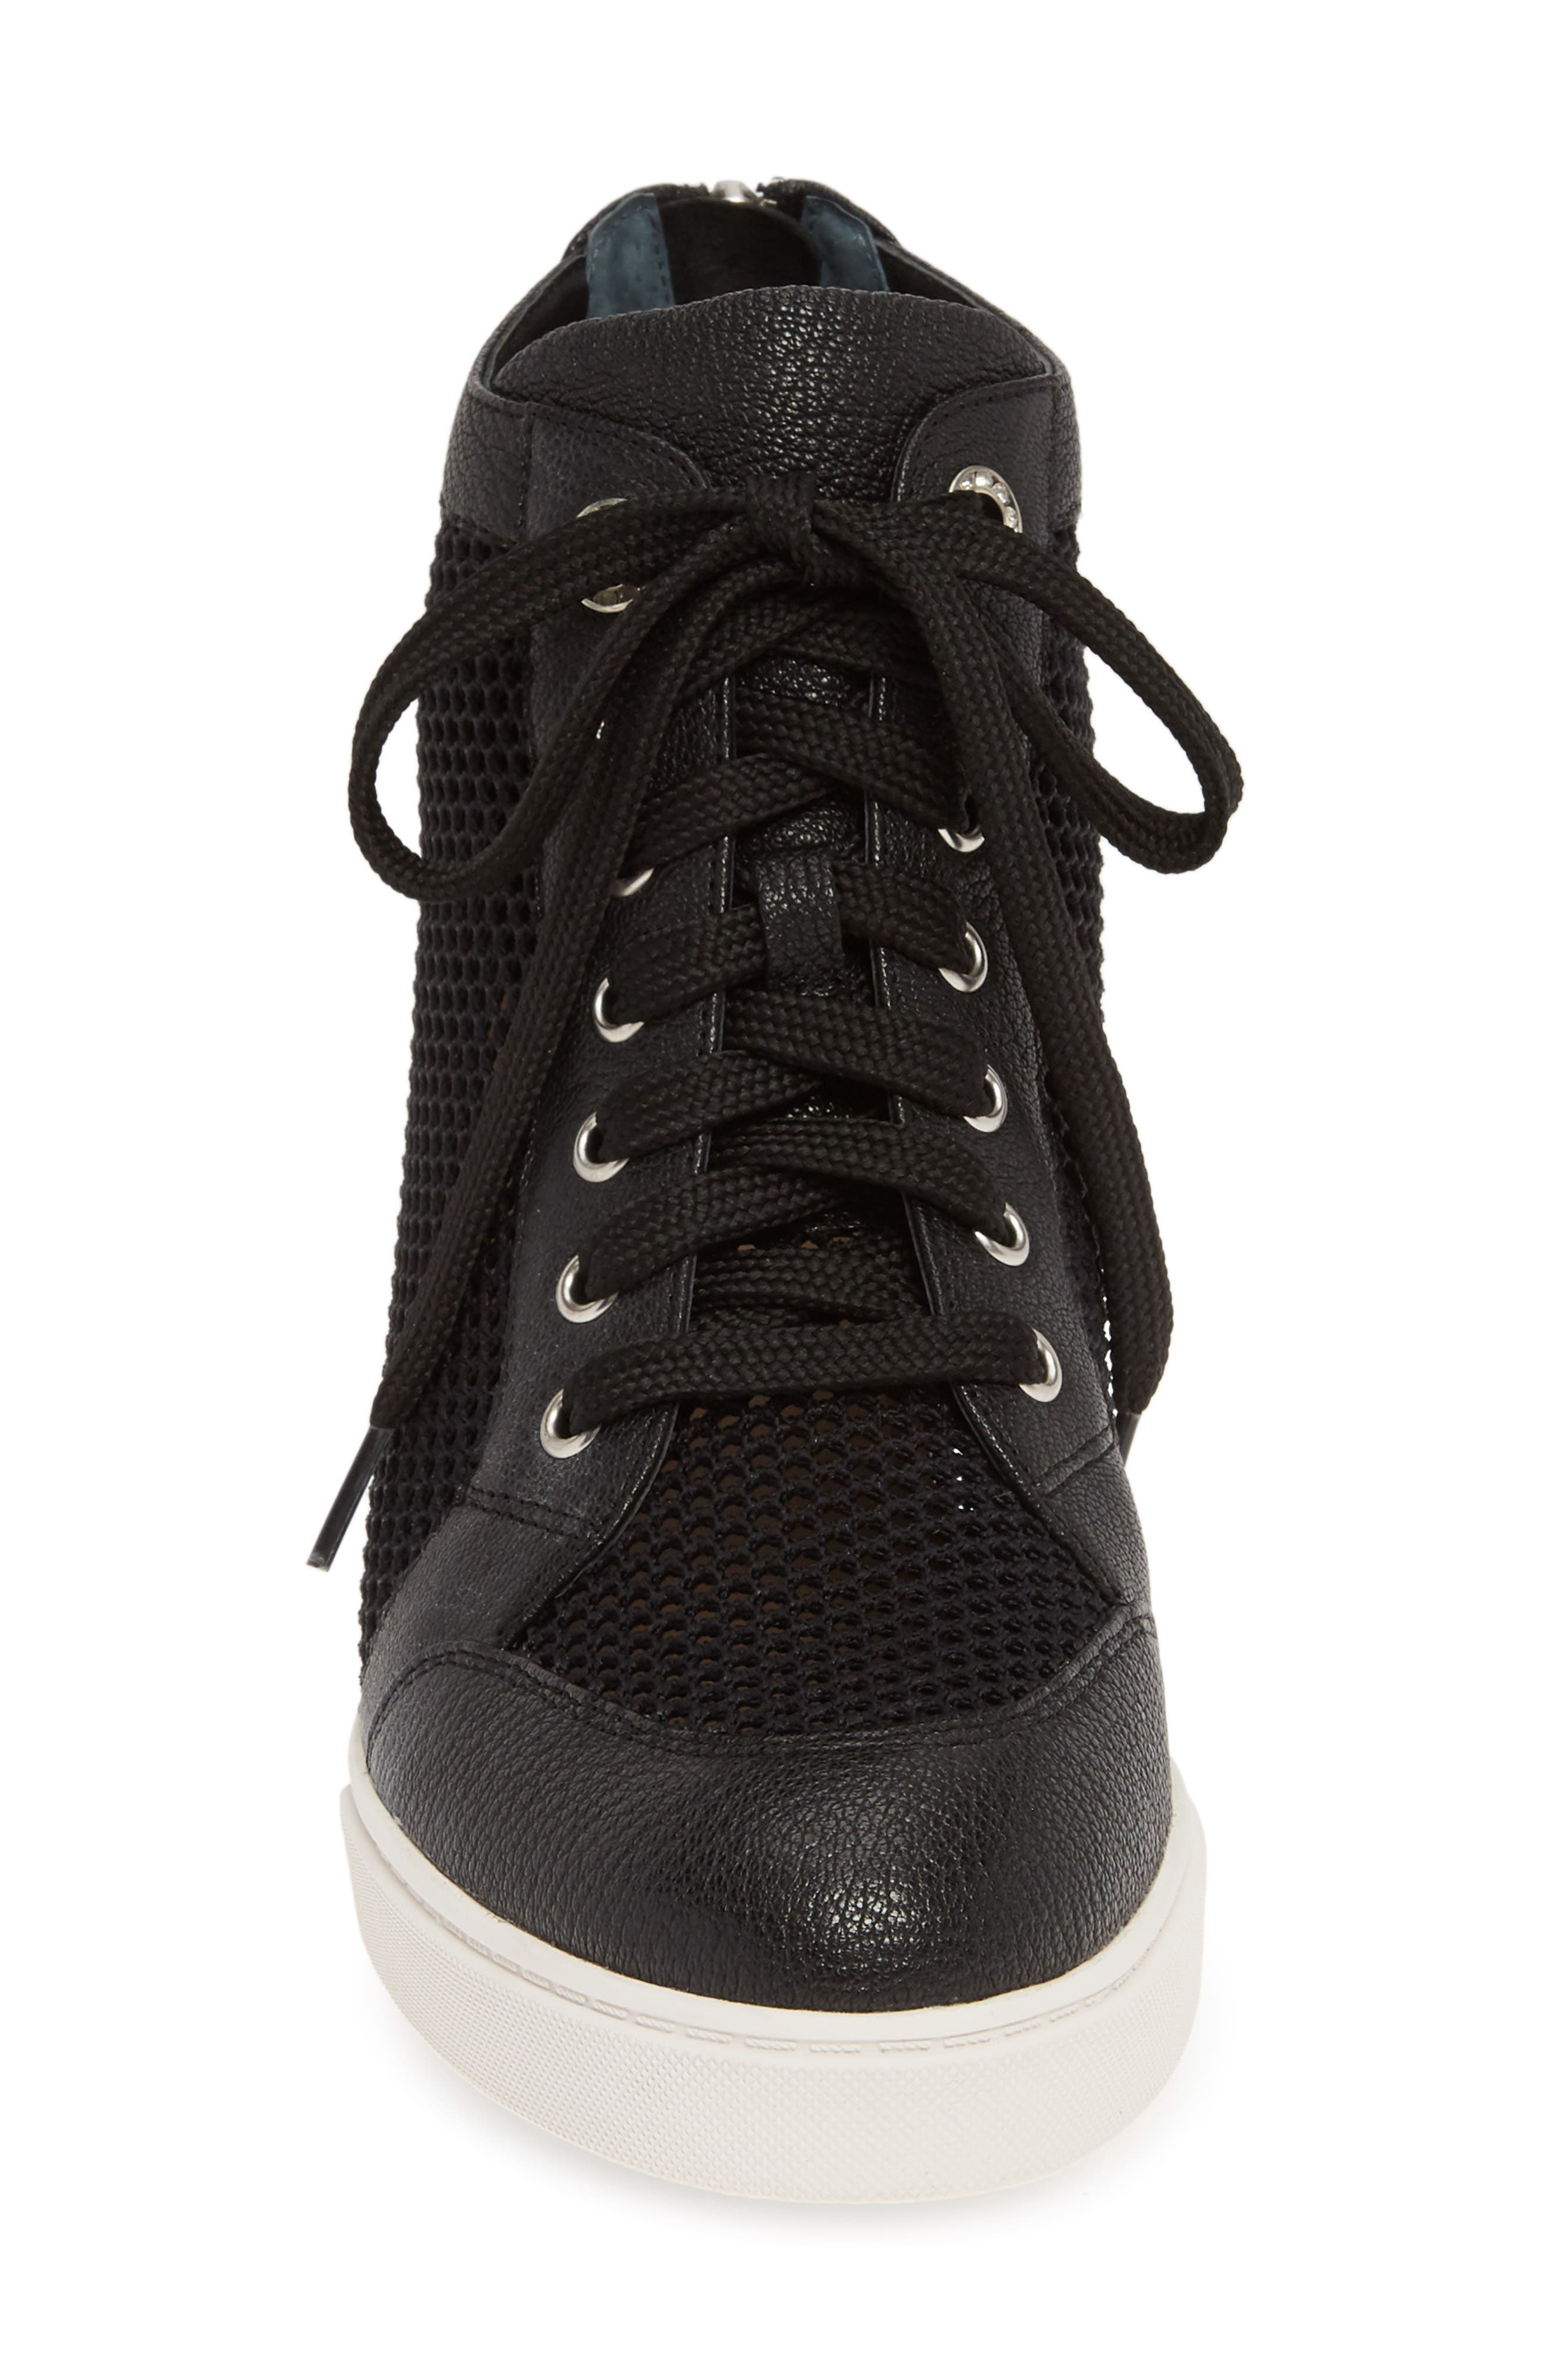 LINEA PAOLO, Finian Mesh Wedge Sneaker Bootie, Alternate thumbnail 4, color, BLACK LEATHER